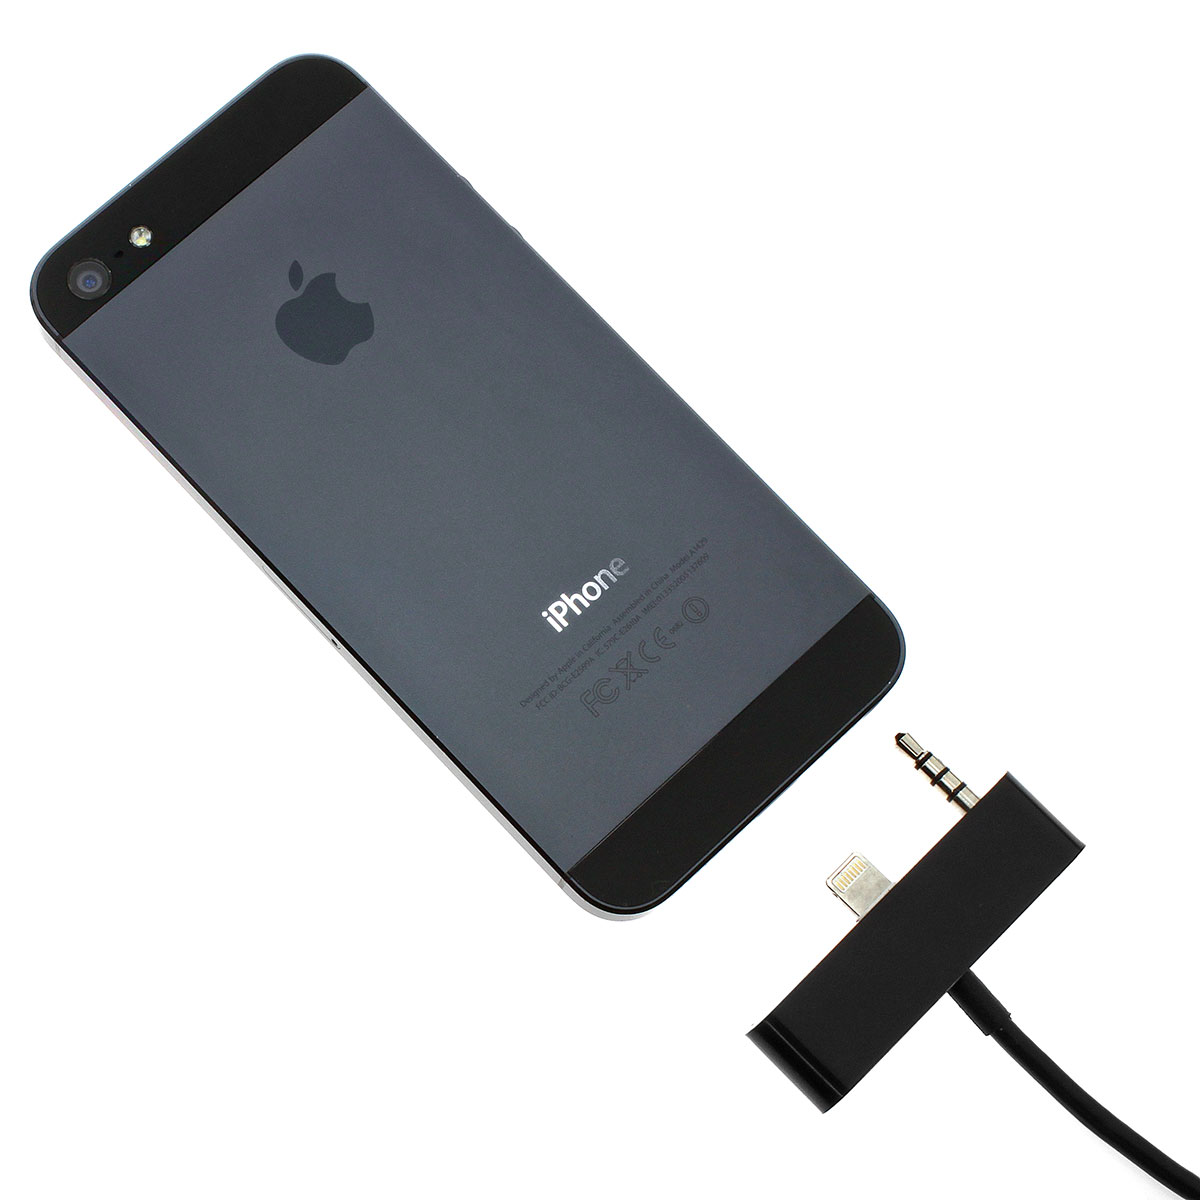 Iphone  Kfz Ladekabel